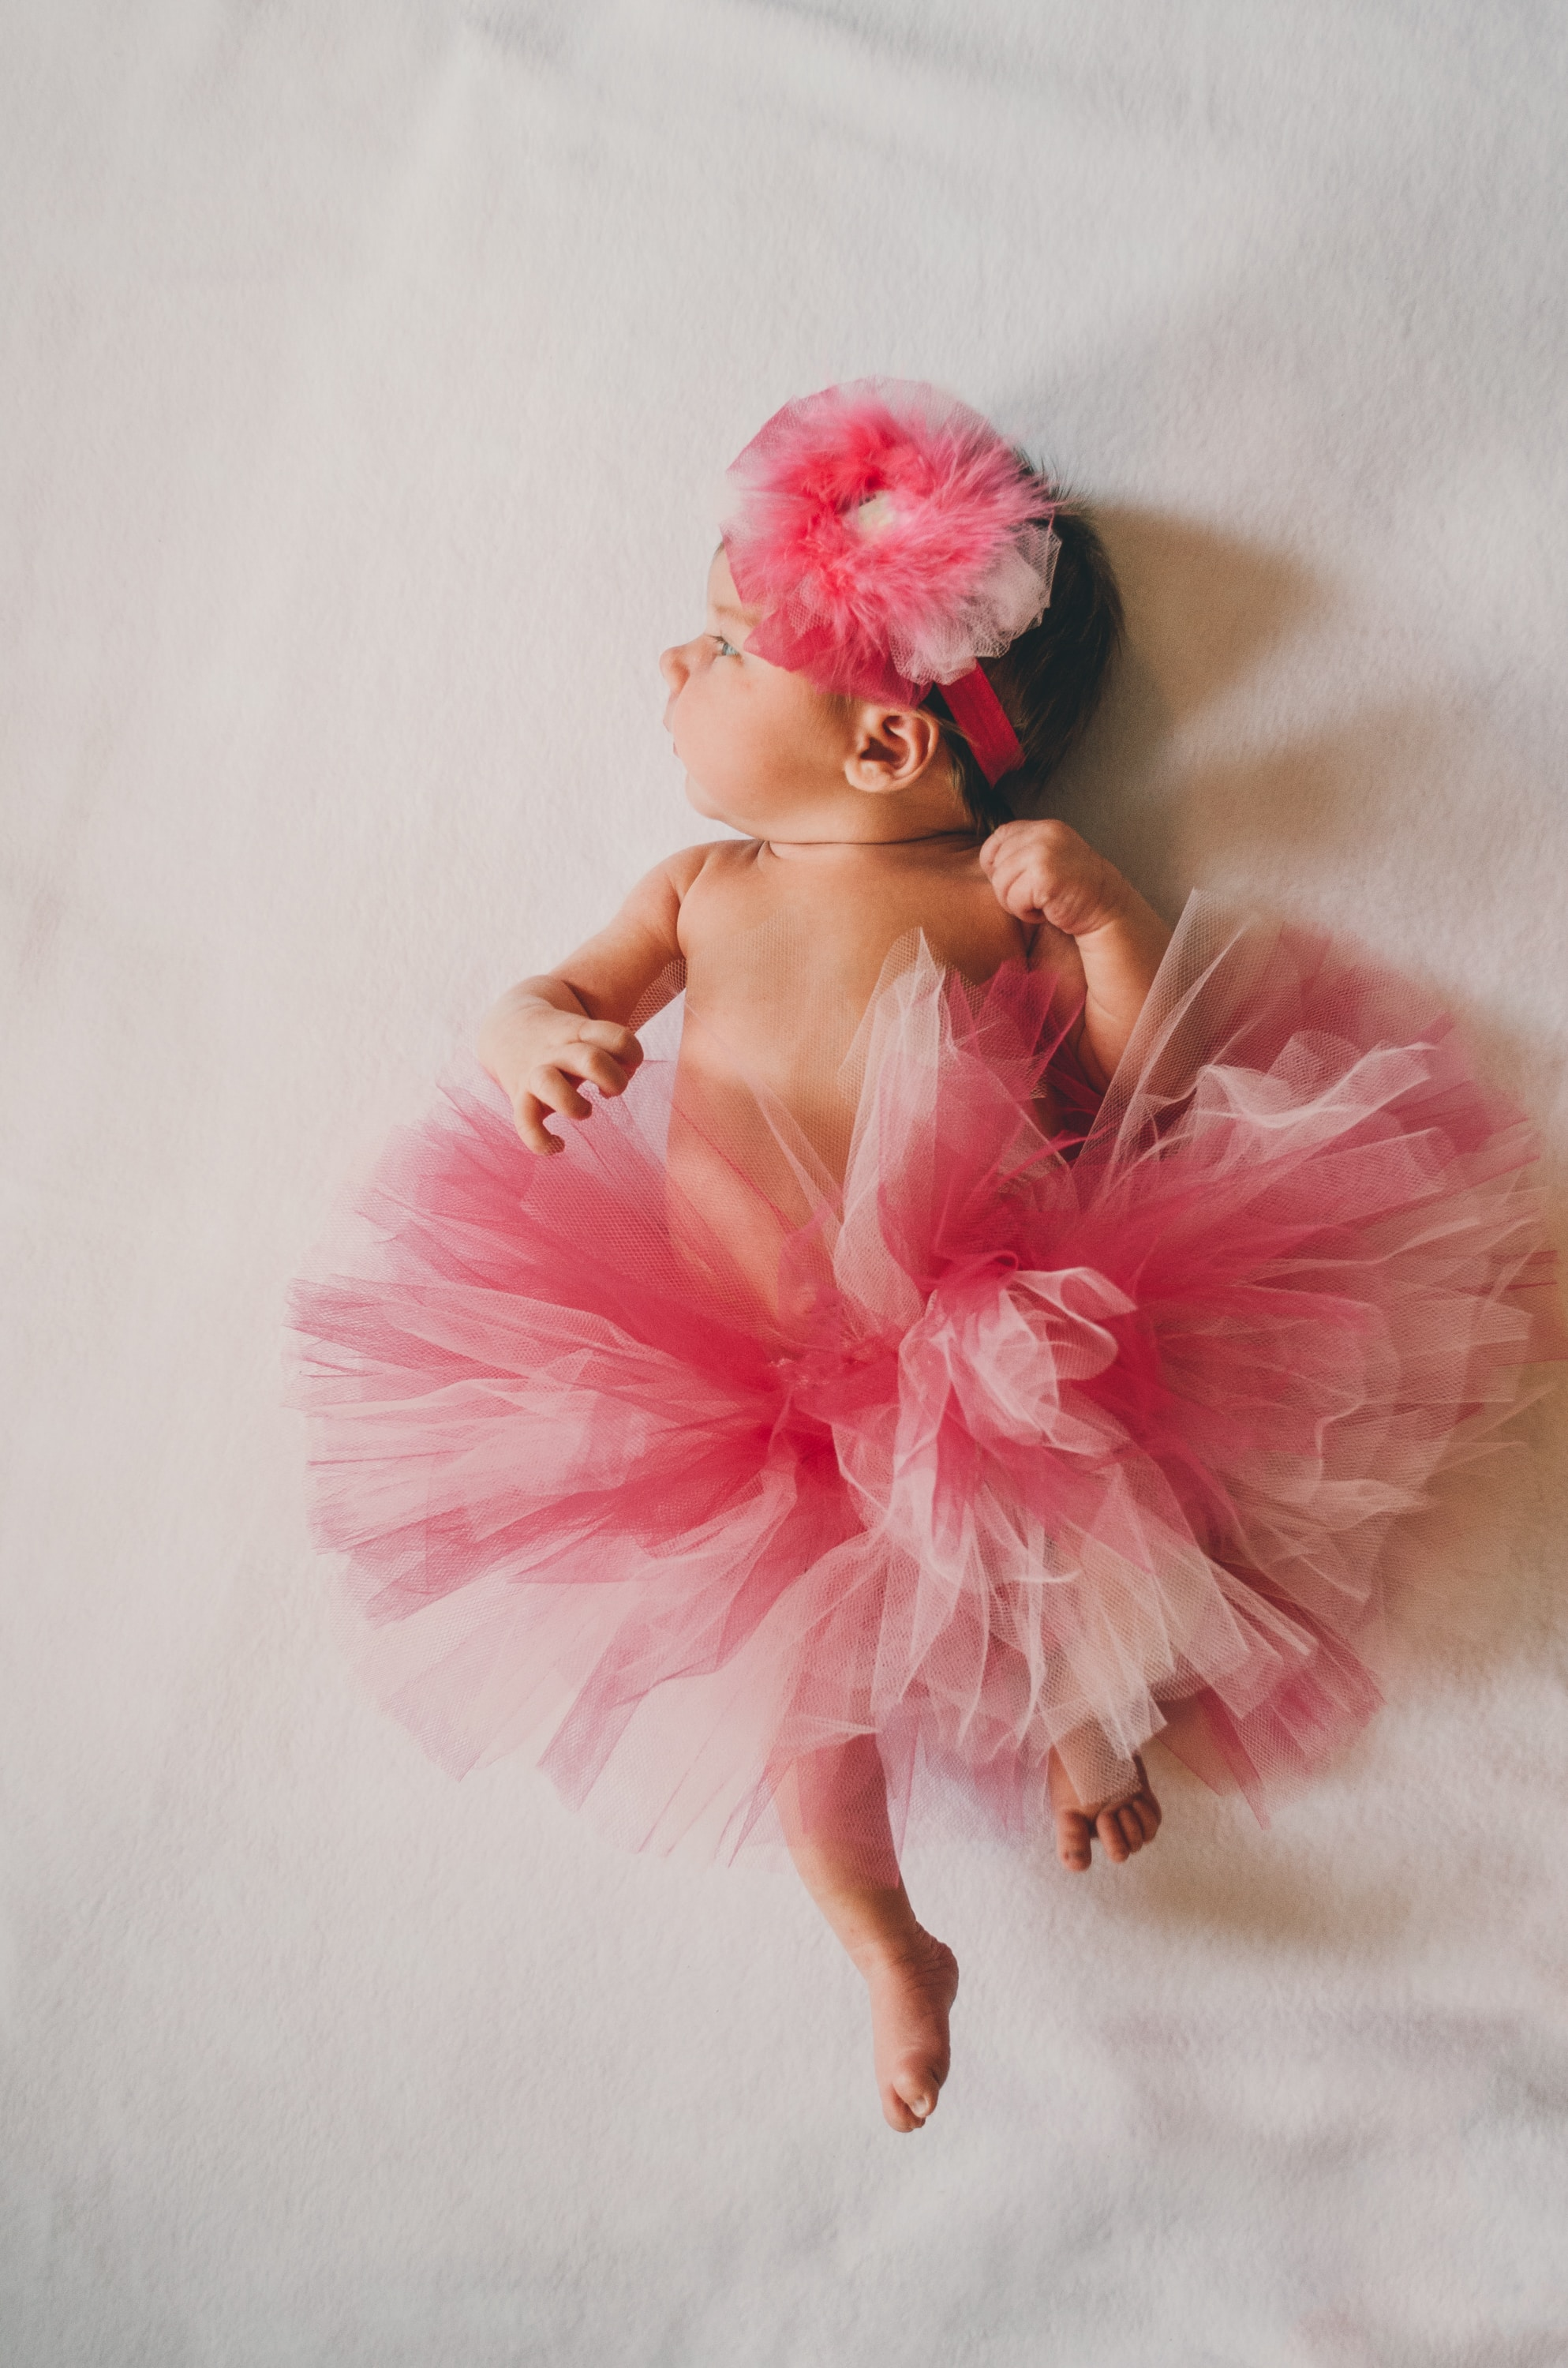 For decades, pink has been the staple color for baby girls. In recent years, more and more parents have been dressing their children in more neutral colors.